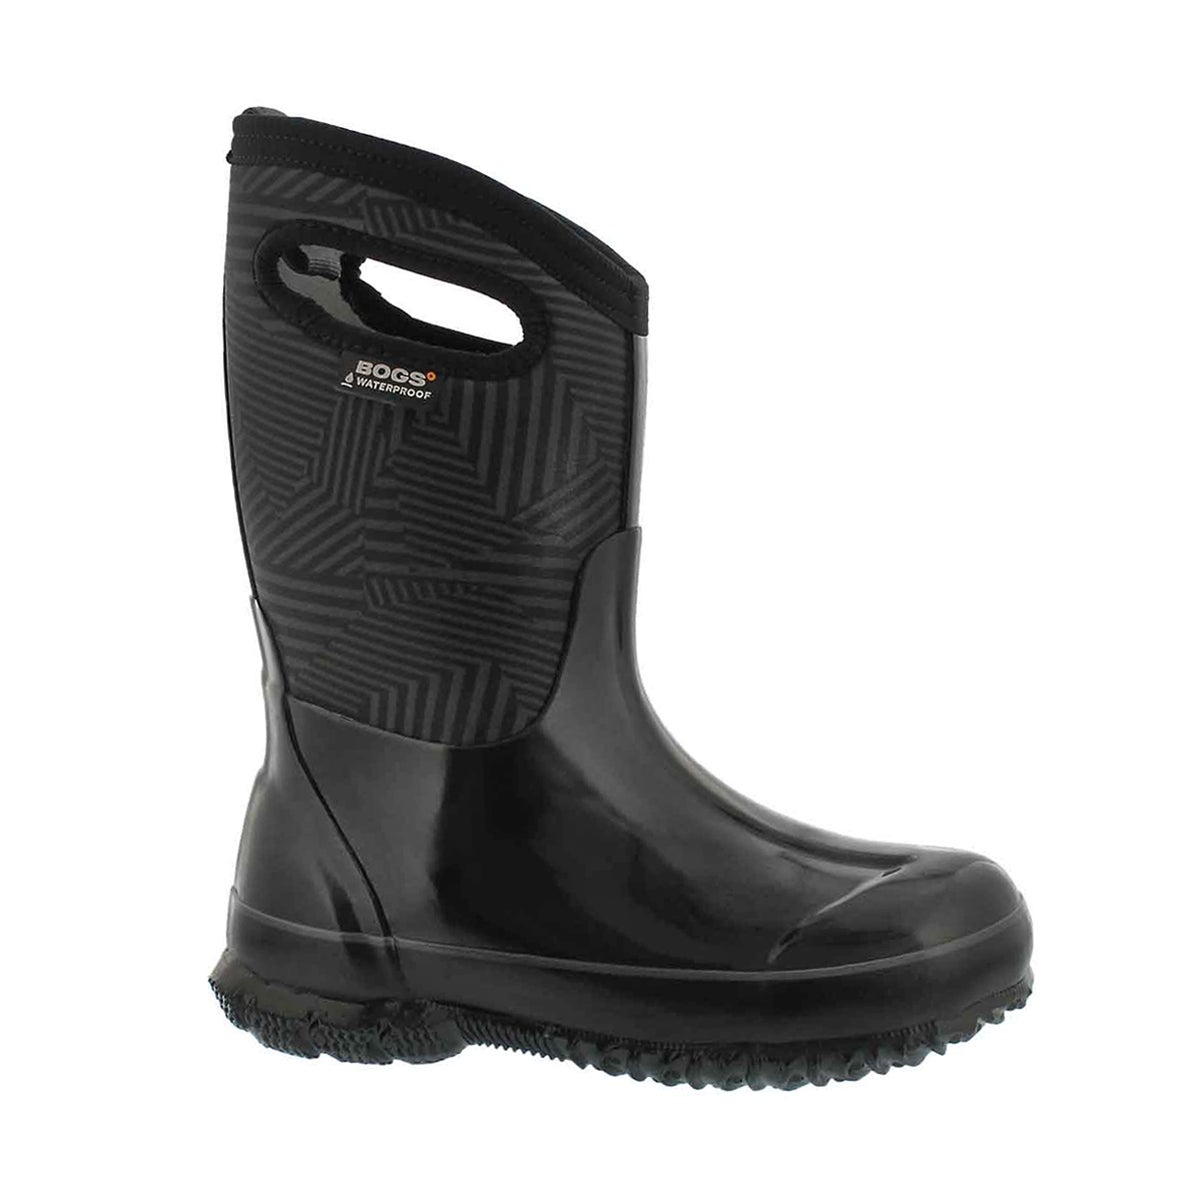 Boys' CLASSIC PHASER black multi waterproof boots